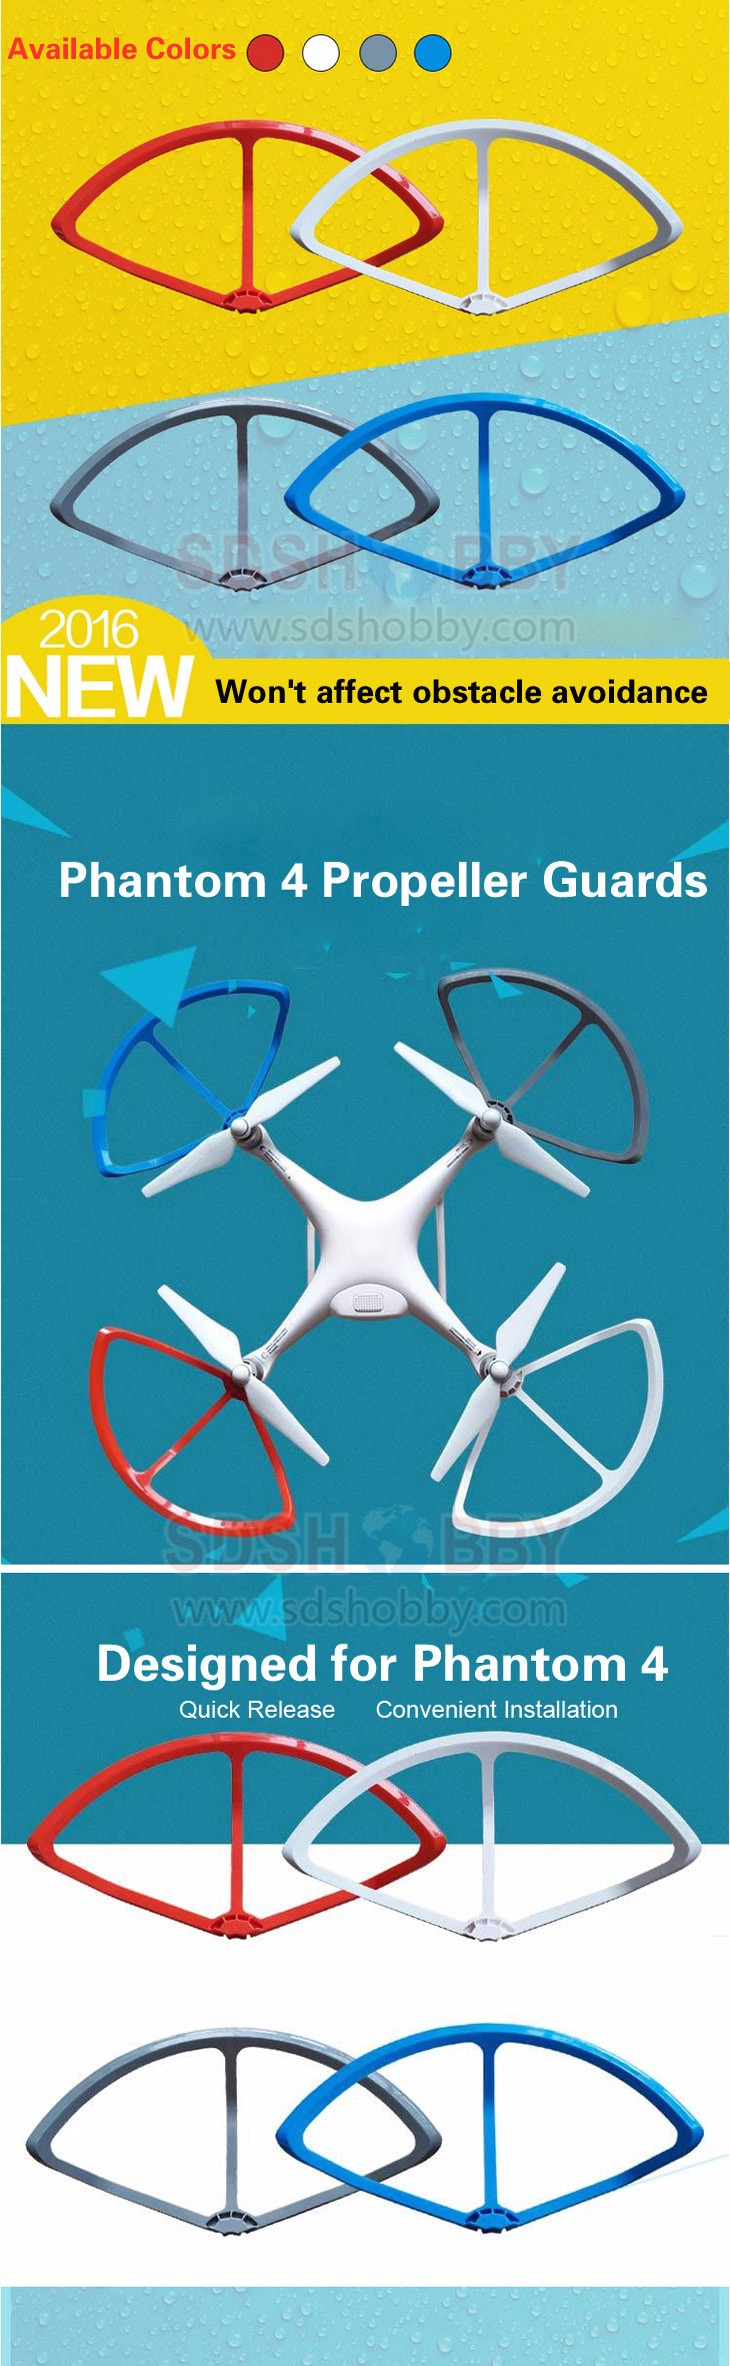 1set Phantom 4 Quick-release Propeller Guards Protectors Shielding Rings Bumpers for DJI Phantom4/PRO/PRO+ v2.0 Fortress Design